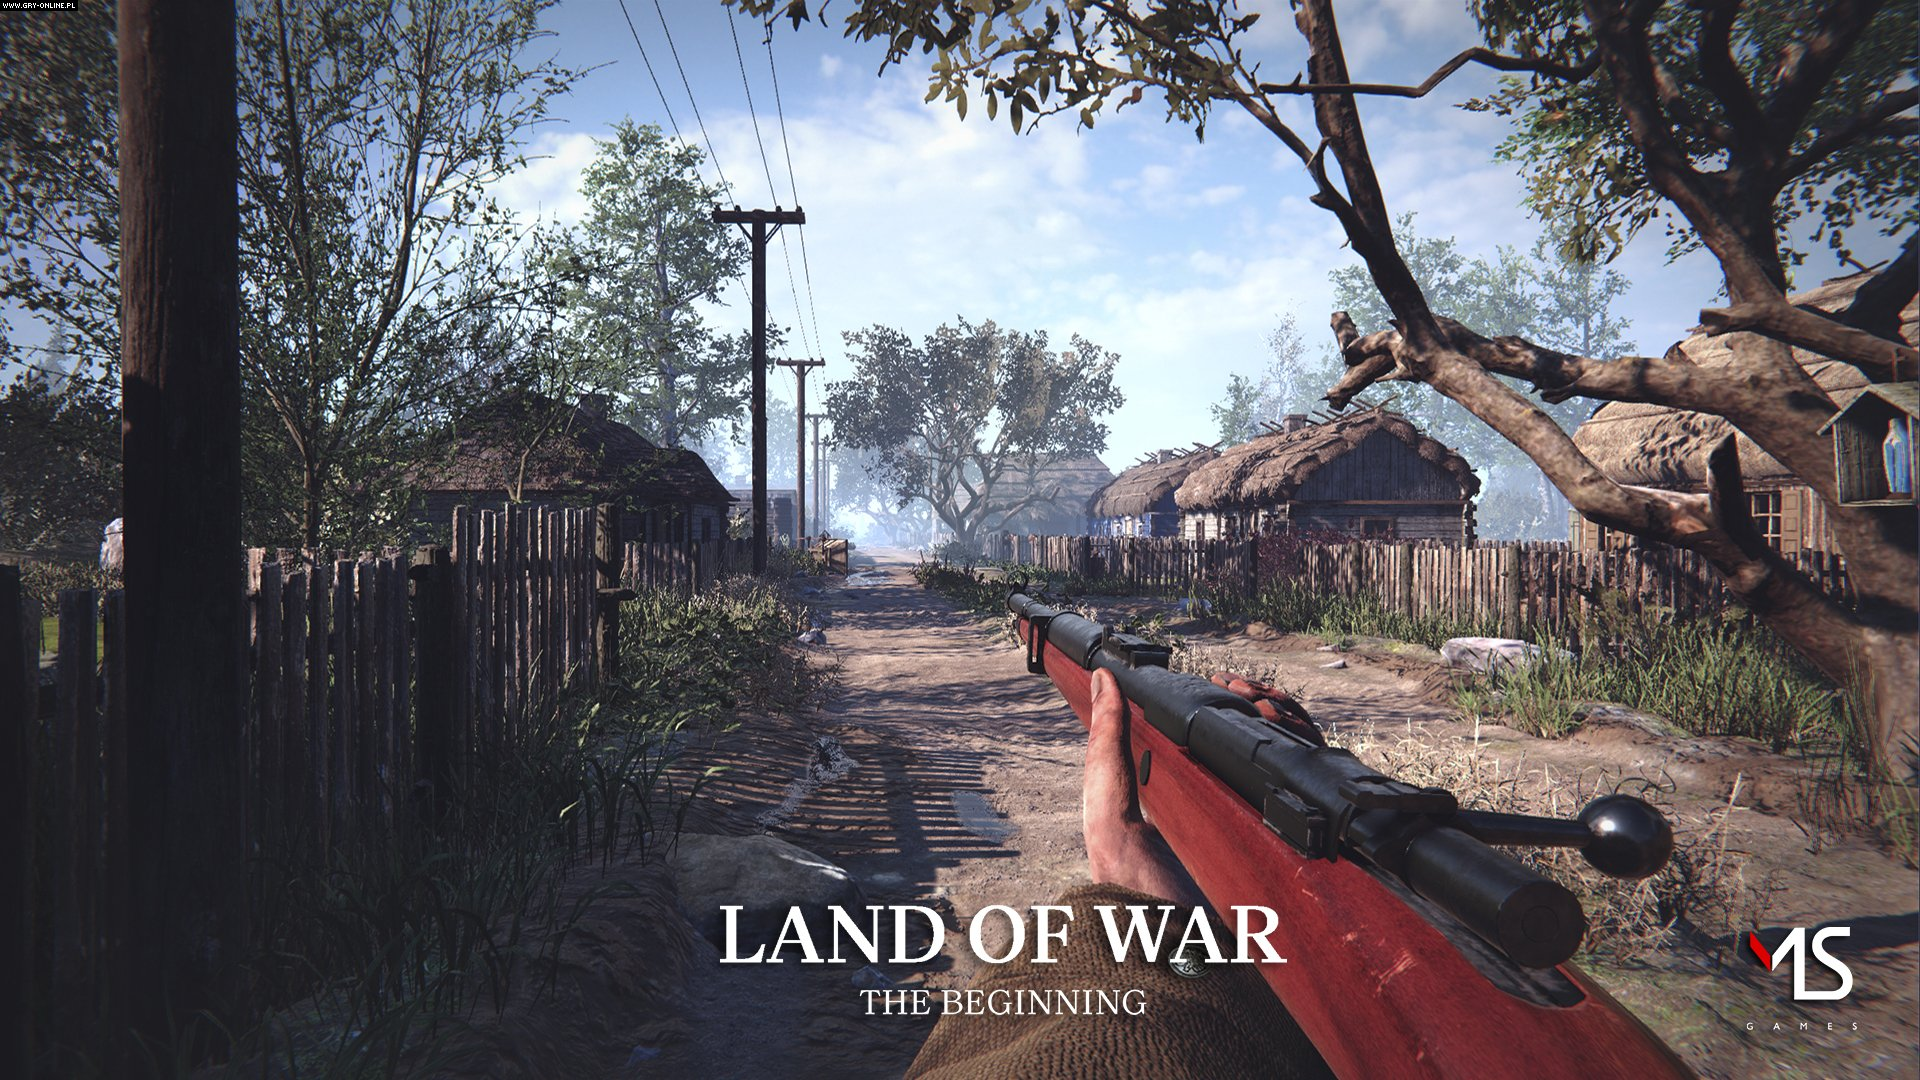 Land of War: The Beginning PC Gry Screen 2/7, MS Games